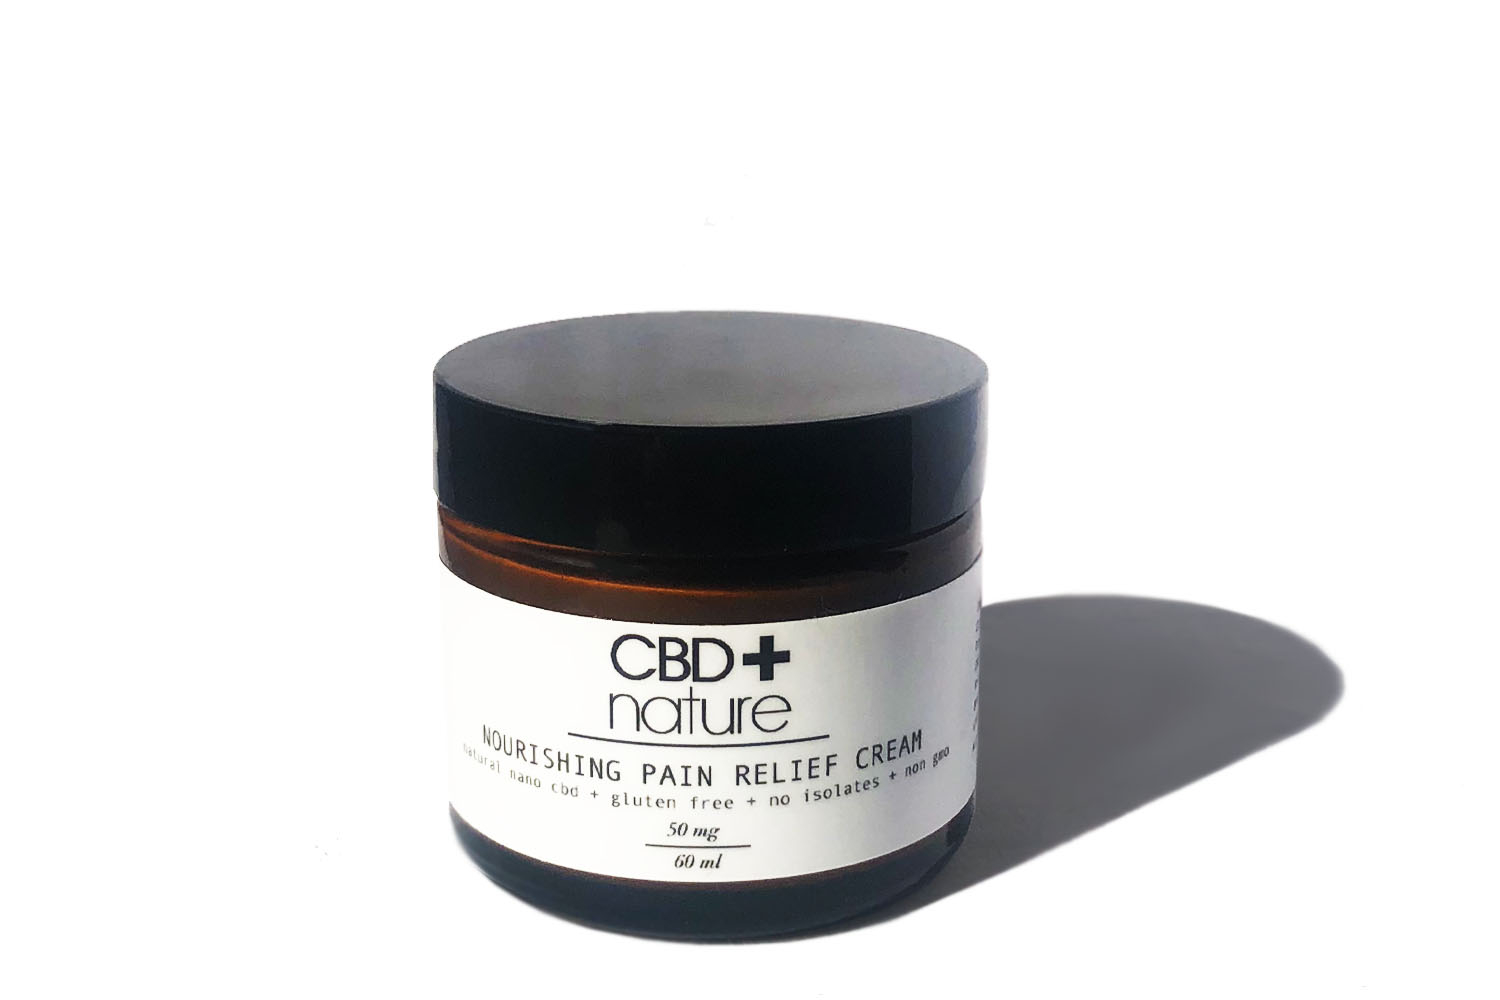 CBD+ NATURE PRODUCT SHOTS_PAIN RELIEF CREAM.jpg